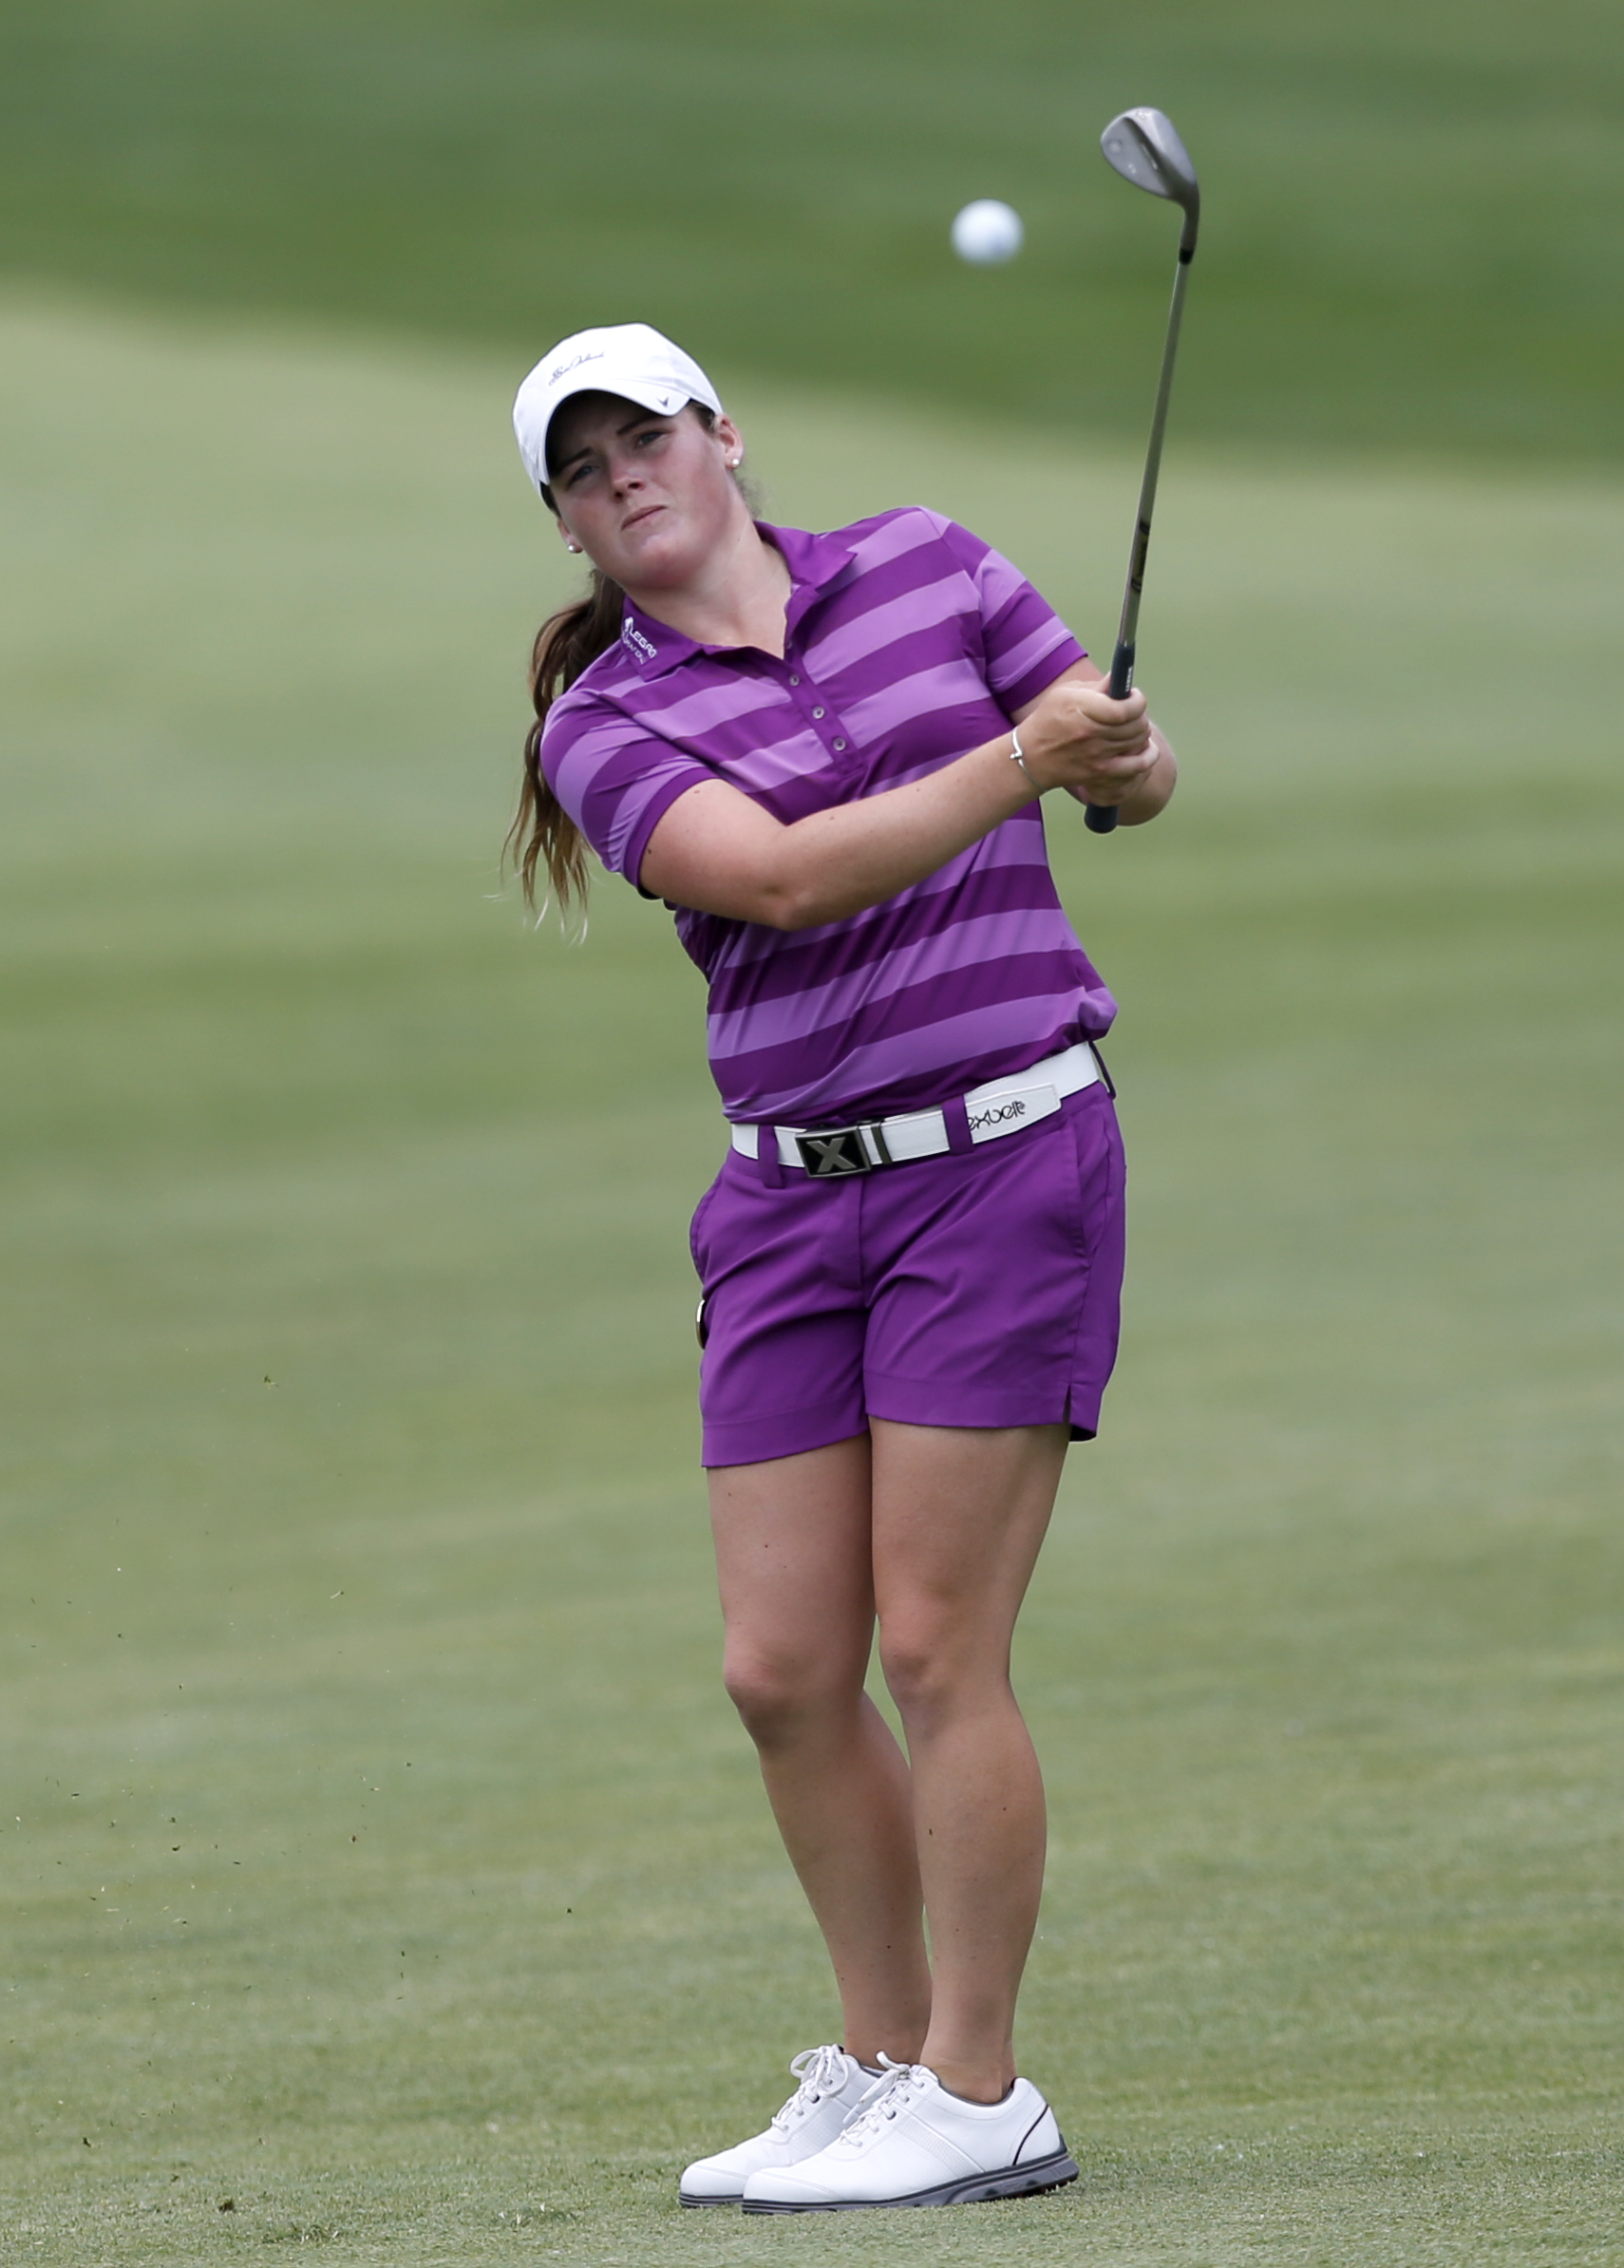 Katie Burnett chips on the 18th hole during the KPMG Women's PGA golf championship at Westchester Country Club, Thursday, June 11, 2015, in Harrison, N.Y. (AP Photo/Julio